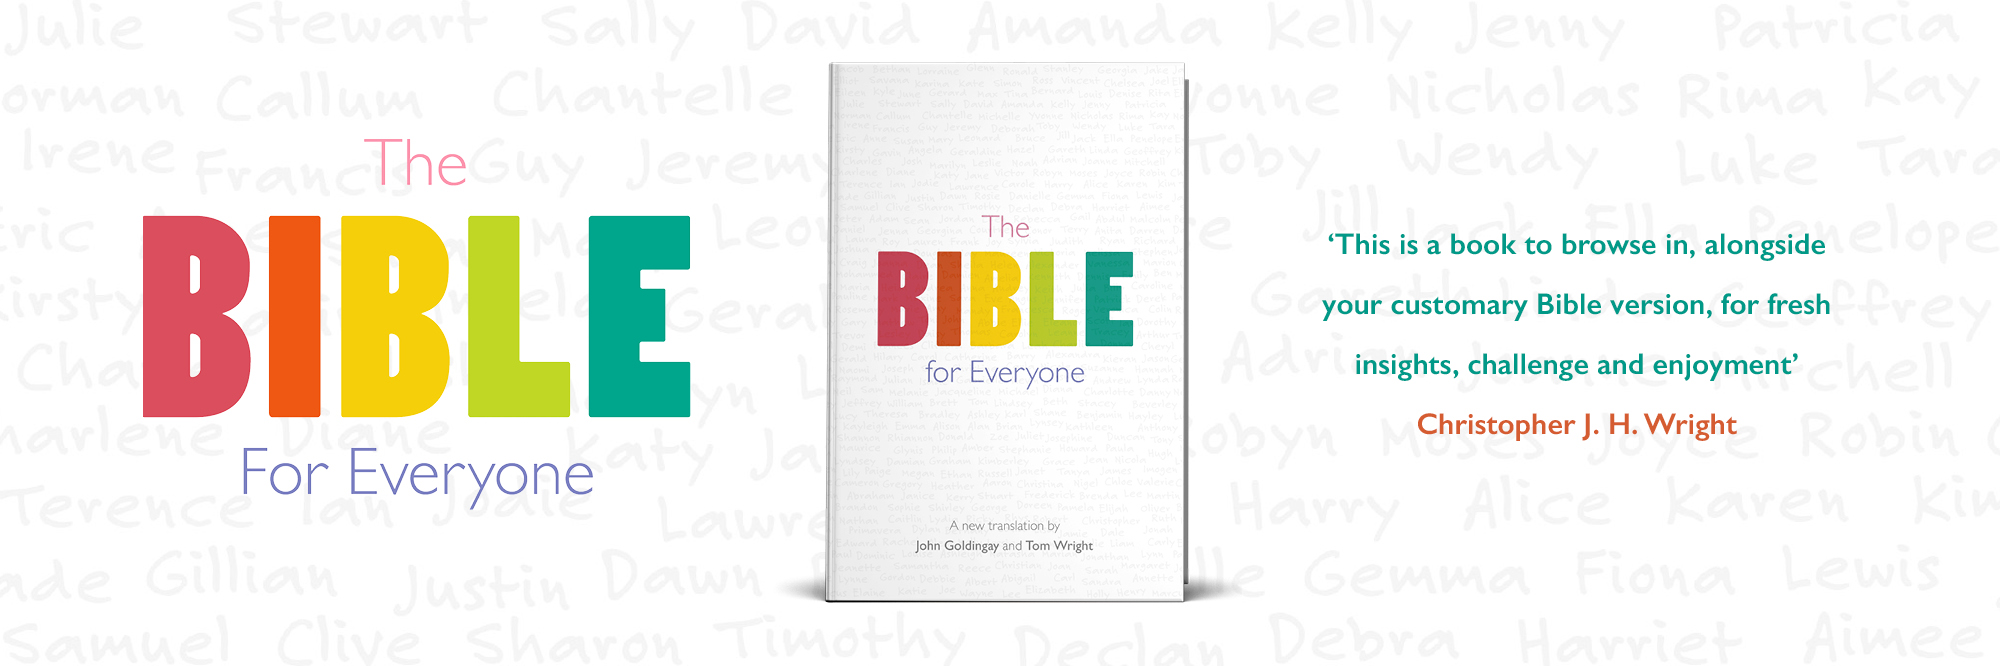 The Bible for Everyone by John Goldingay and Tom Wright